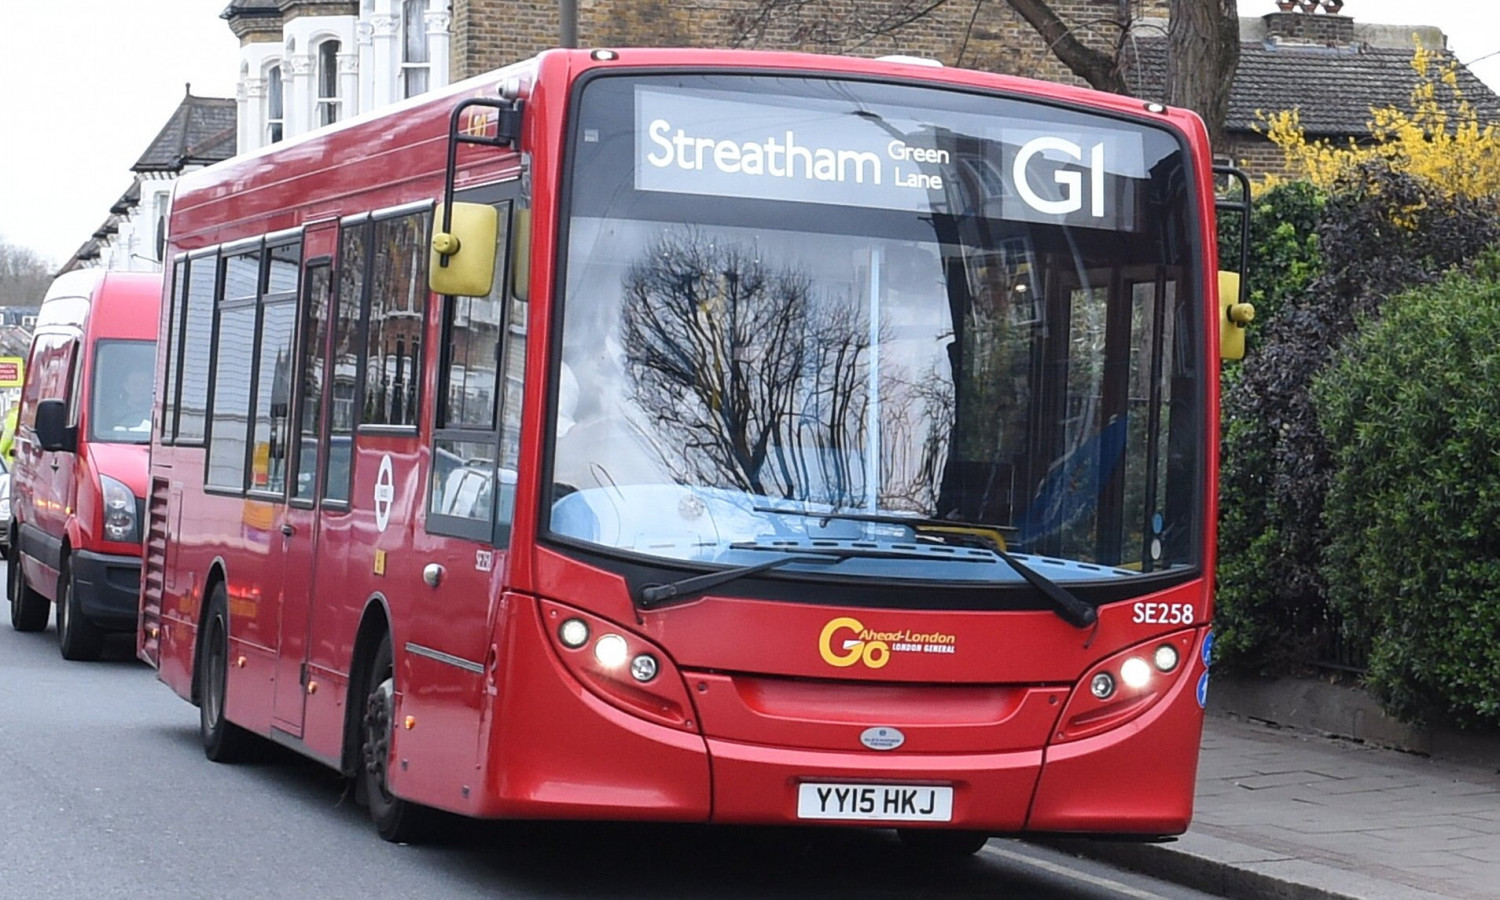 London bus with Go-Ahead logo on the front